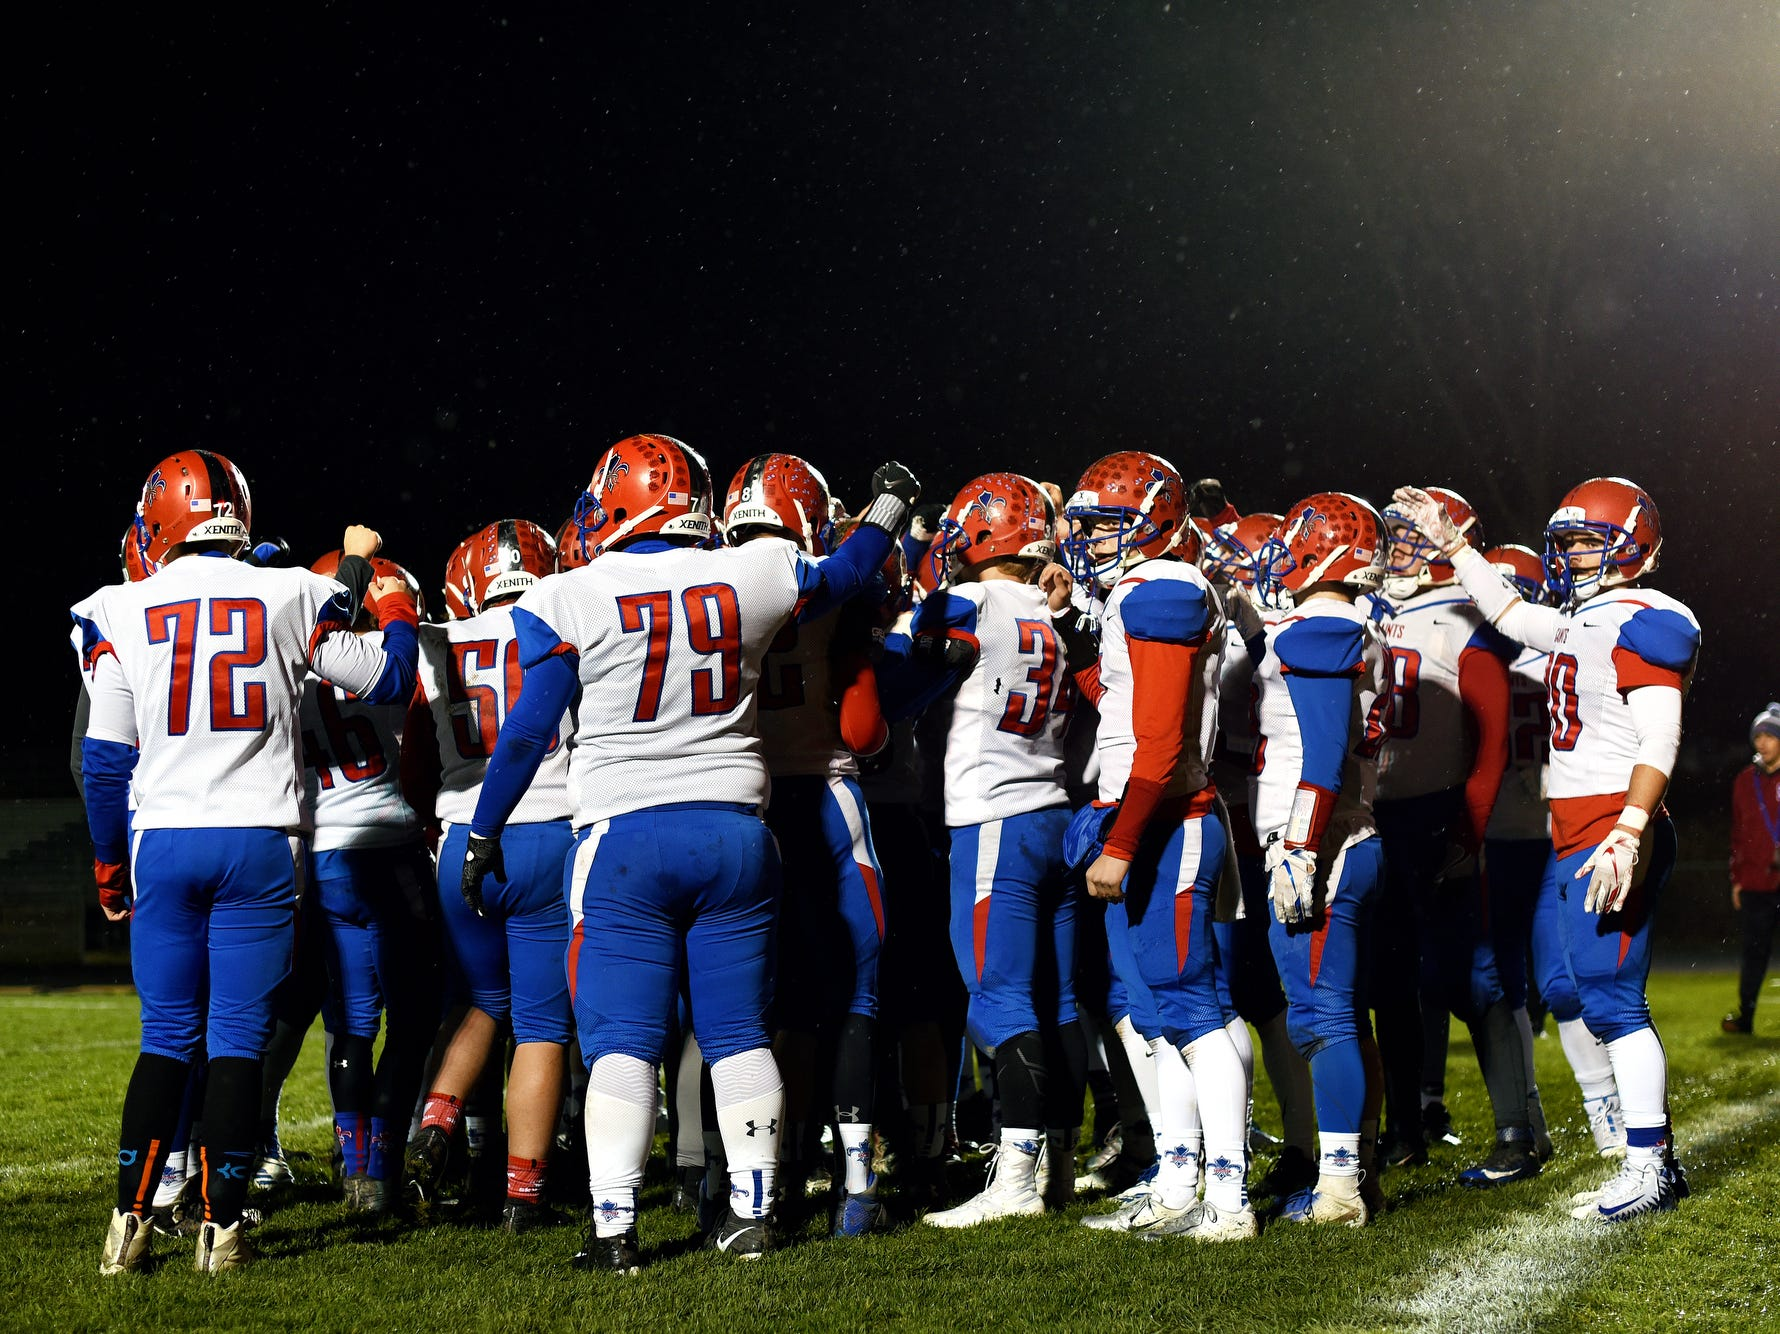 St. Clair huddles up while warming up before Saints game against Williamston on Friday, Nov. 9, 2018, in Williamston.